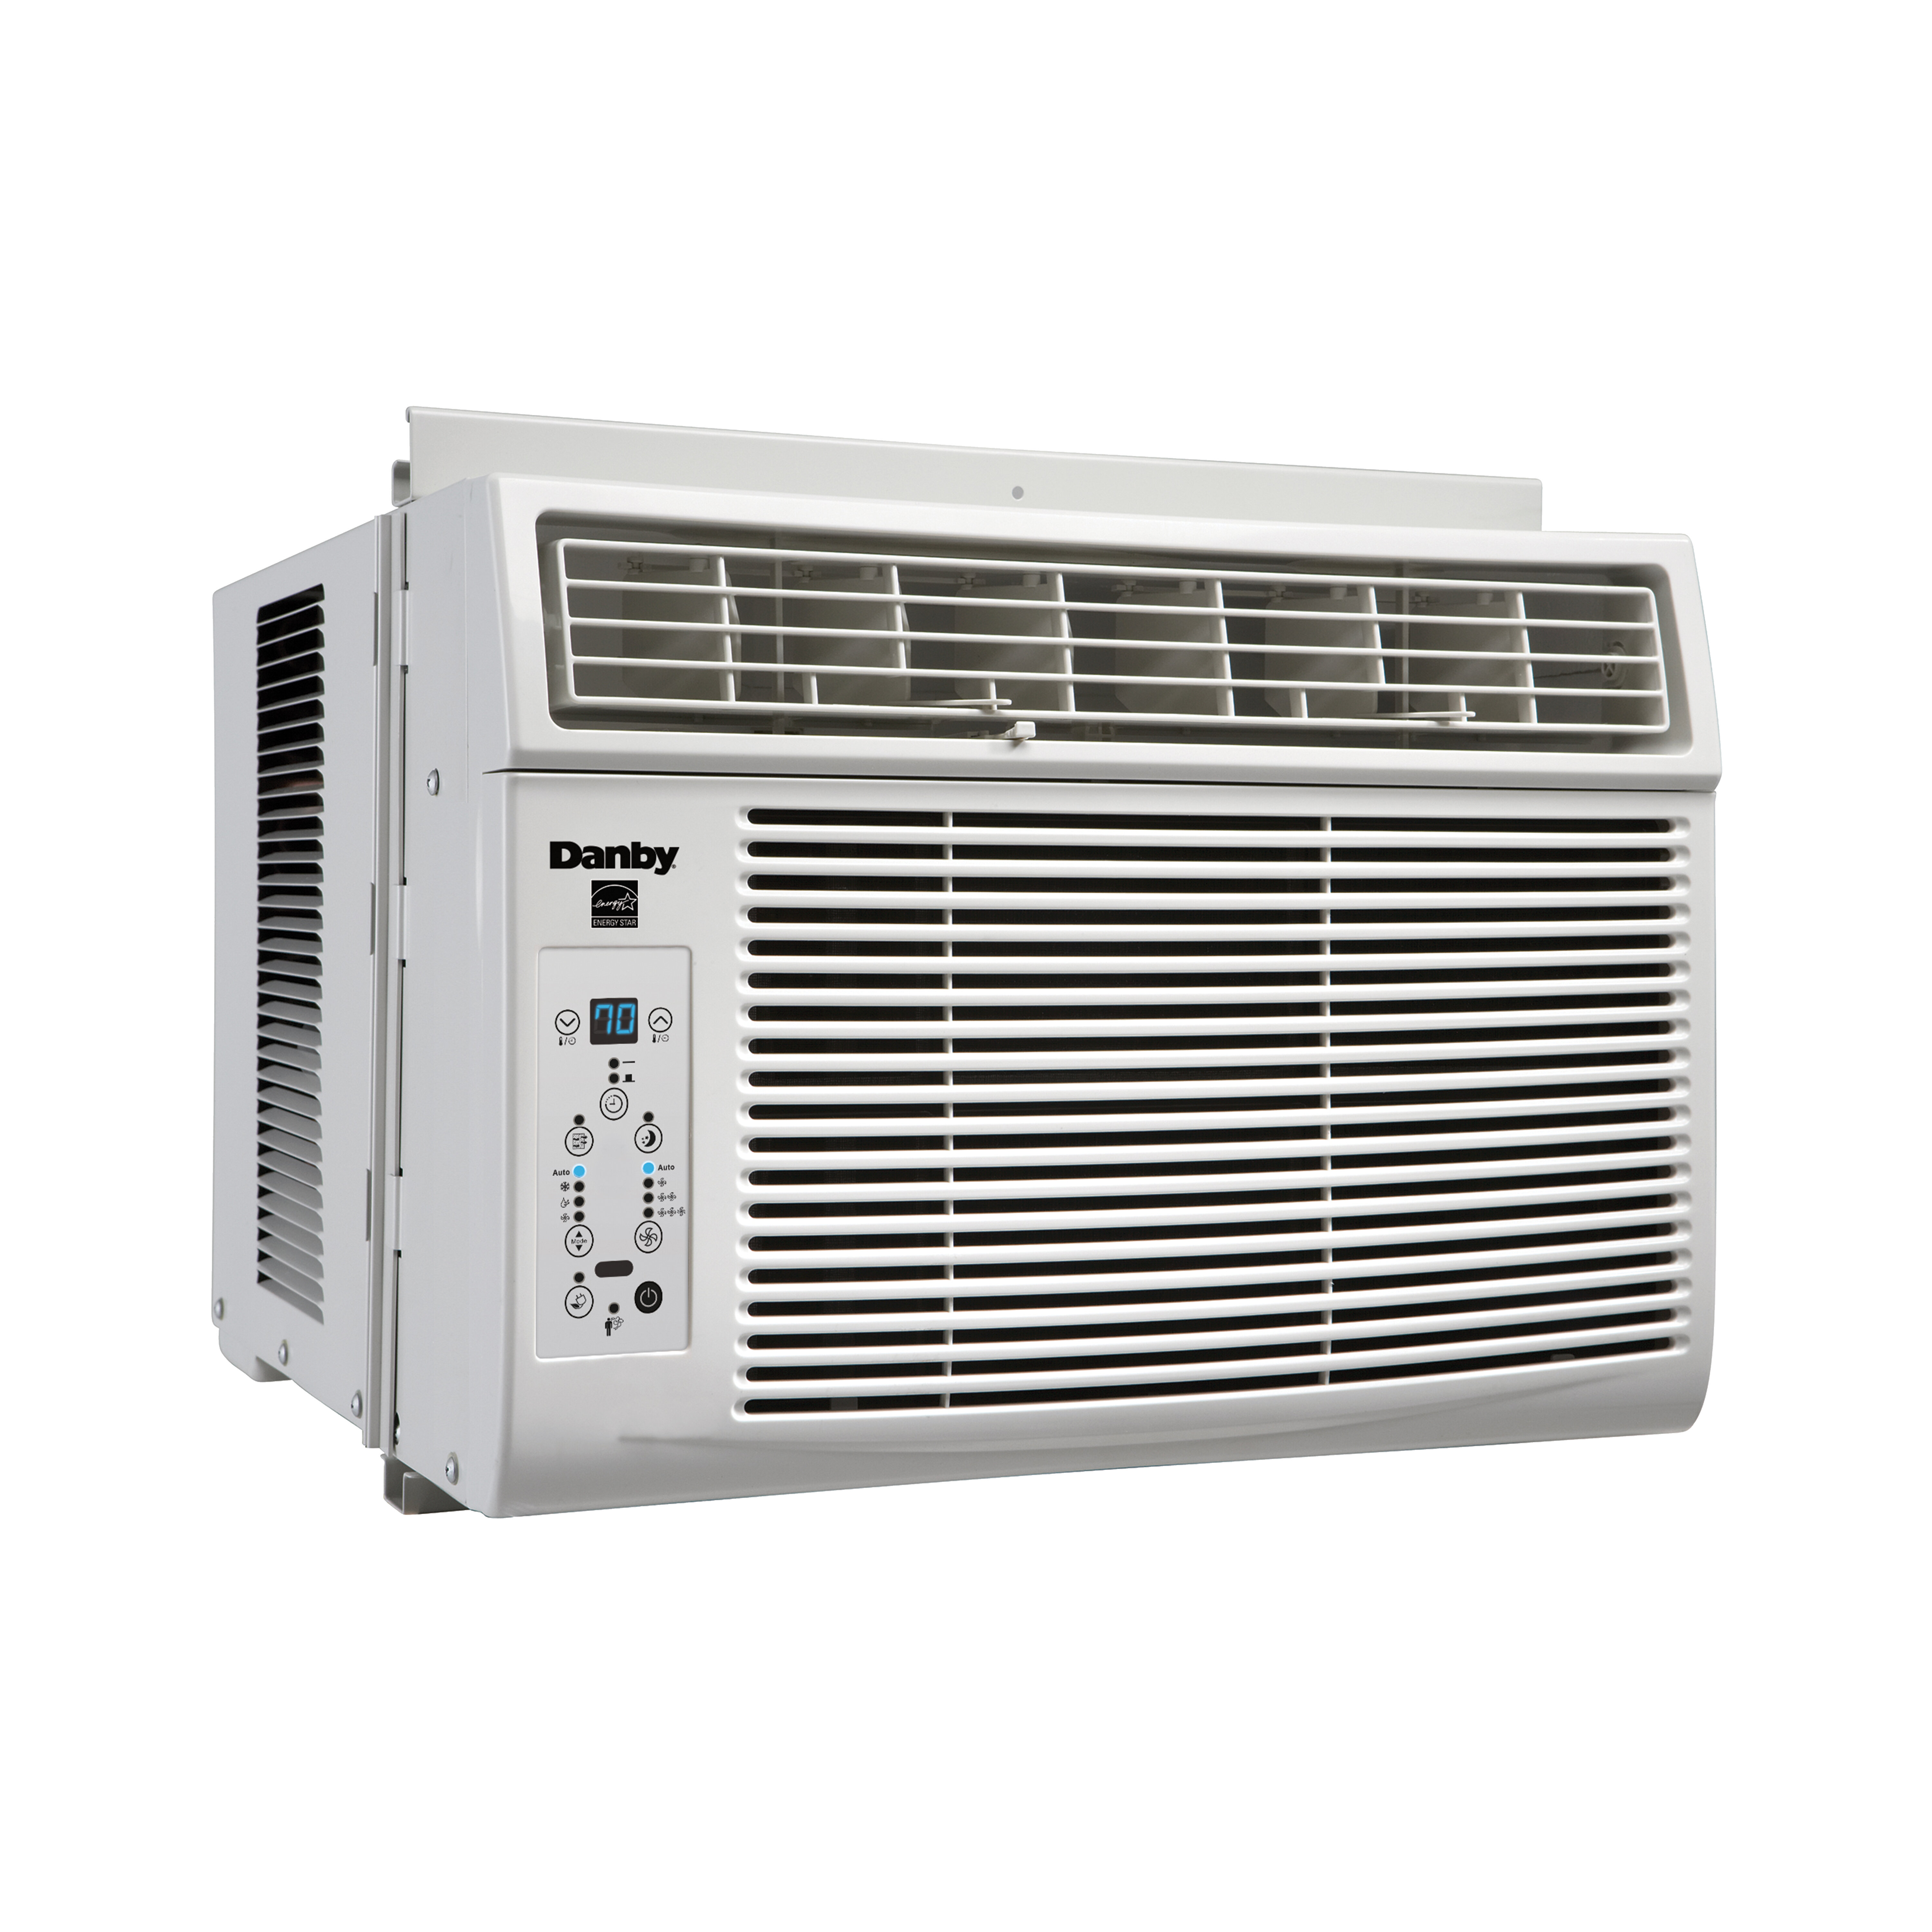 Danby 6,000 BTU Energy Star Window Air Conditioner with Remote ...